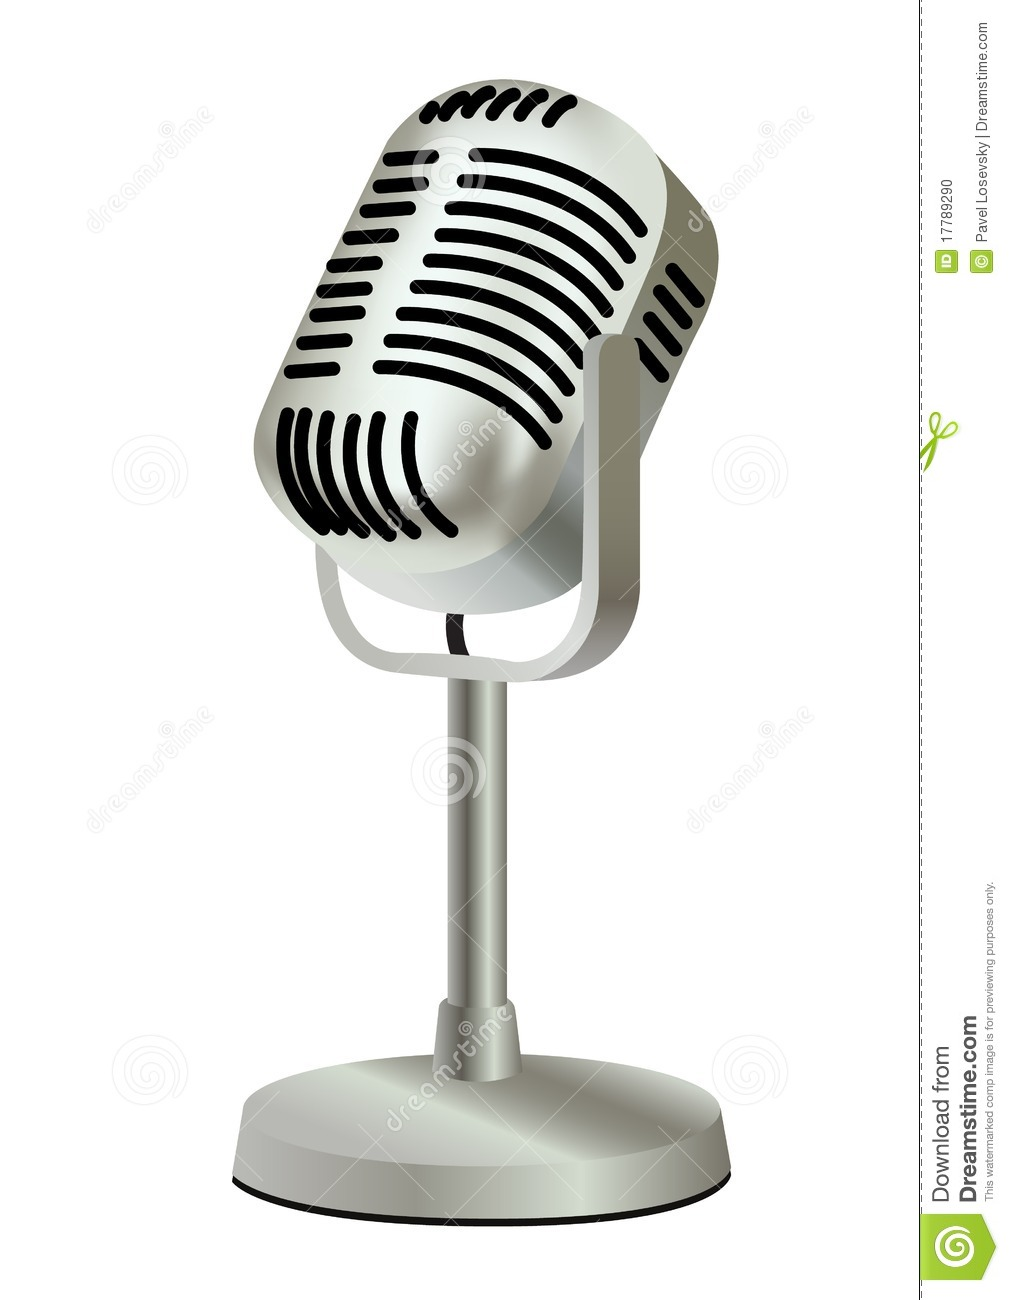 6117 together with Microphone And Headphone Vintage Wallpaper further Radio Station Microphones besides Id F 415782 furthermore Stock Photo Paint Palette Isolated White Background Image13460130. on old radio microphones